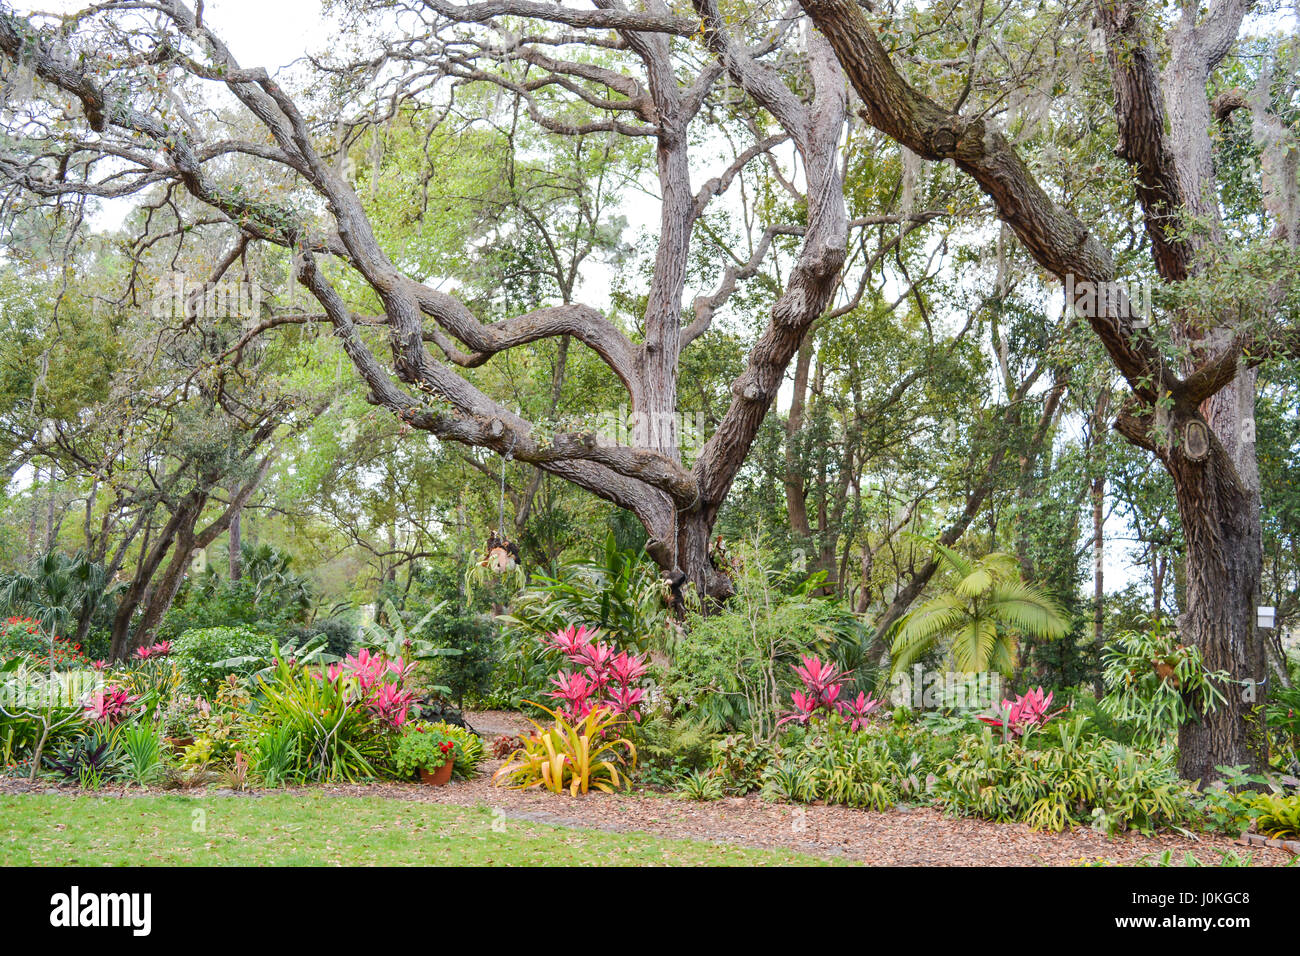 A Beautiful Garden And Landscape At Mead Botanical Gardens In Winter Park,  Orlando, Orange County, Florida